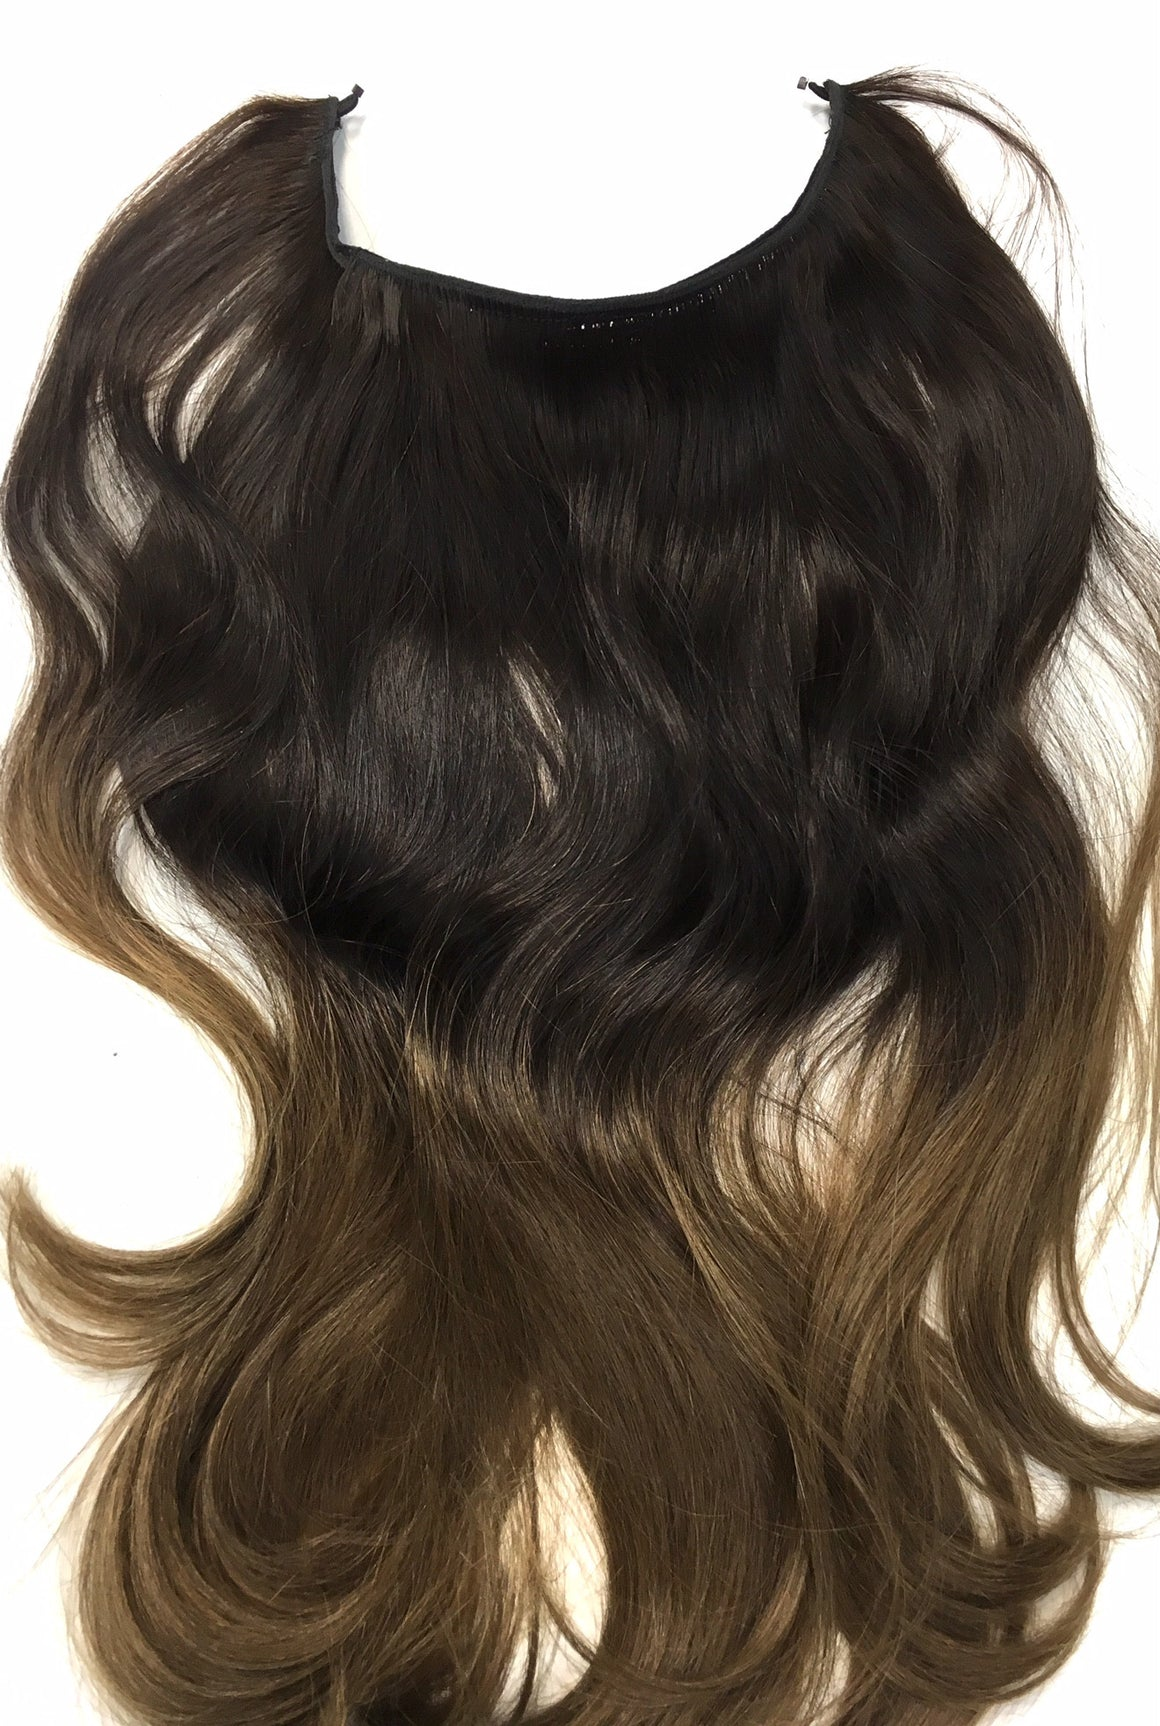 Easy Hair Extensions - Wired Hair Extensions- Ombre Colors - Hairesthetic